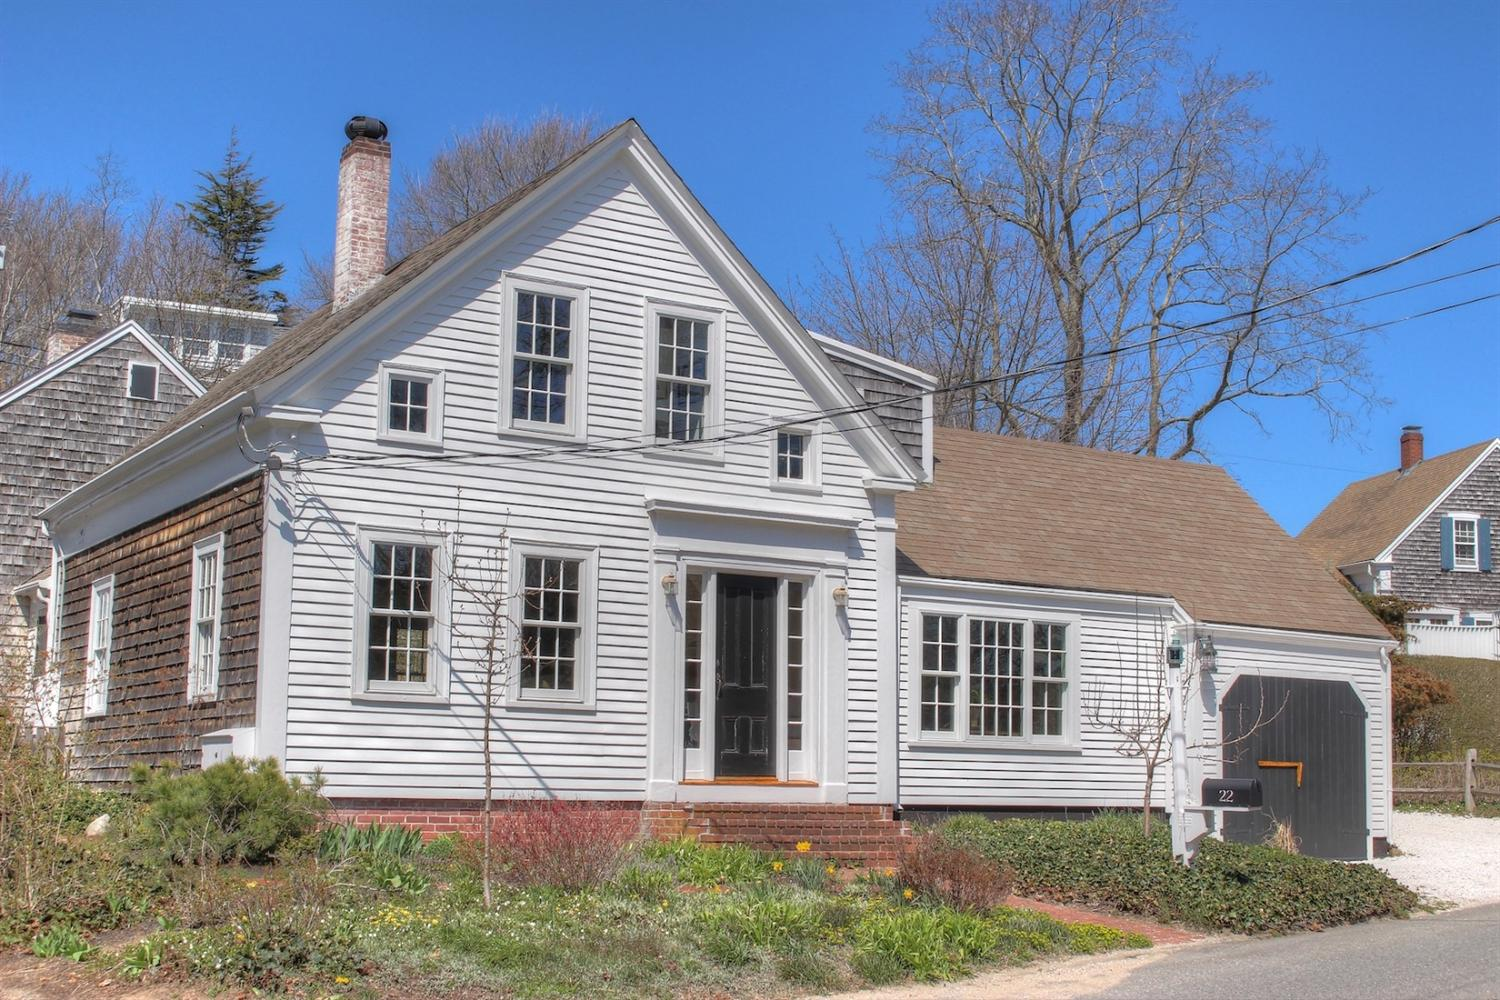 sales property at 22 East Commercial Street, Wellfleet, MA